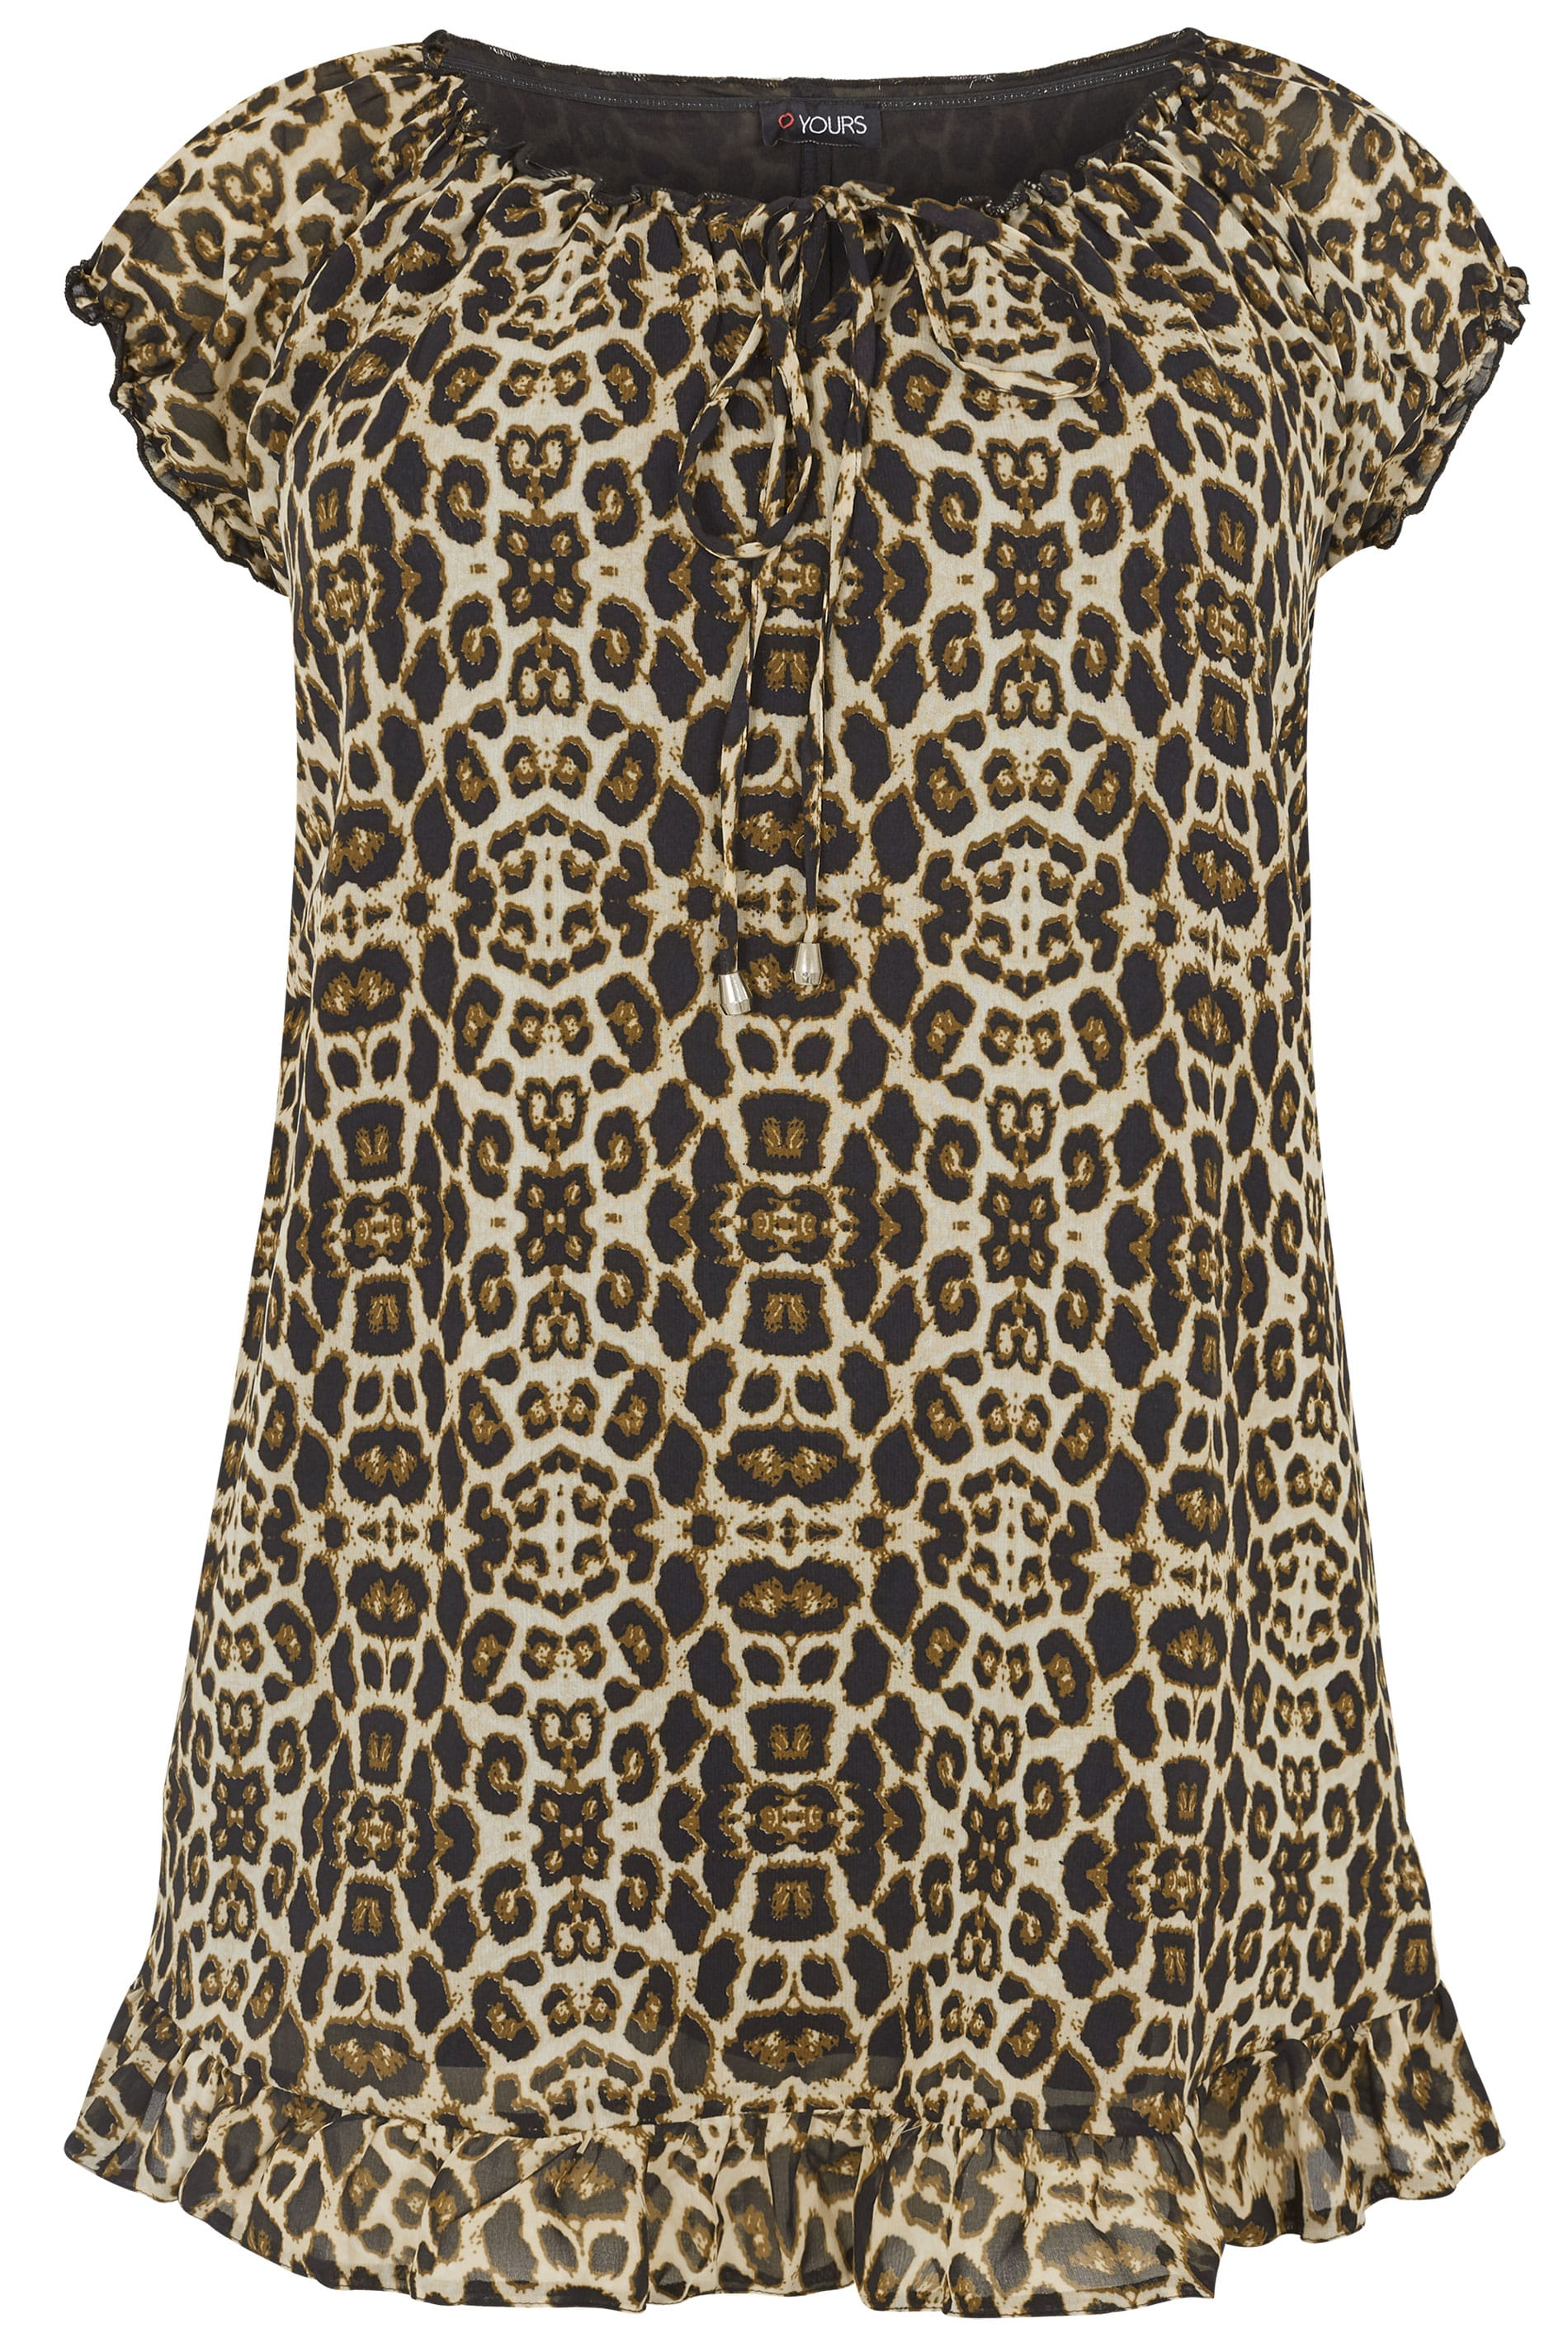 064e1aaff46c Leopard Print Gypsy Top, Plus size 16 to 36